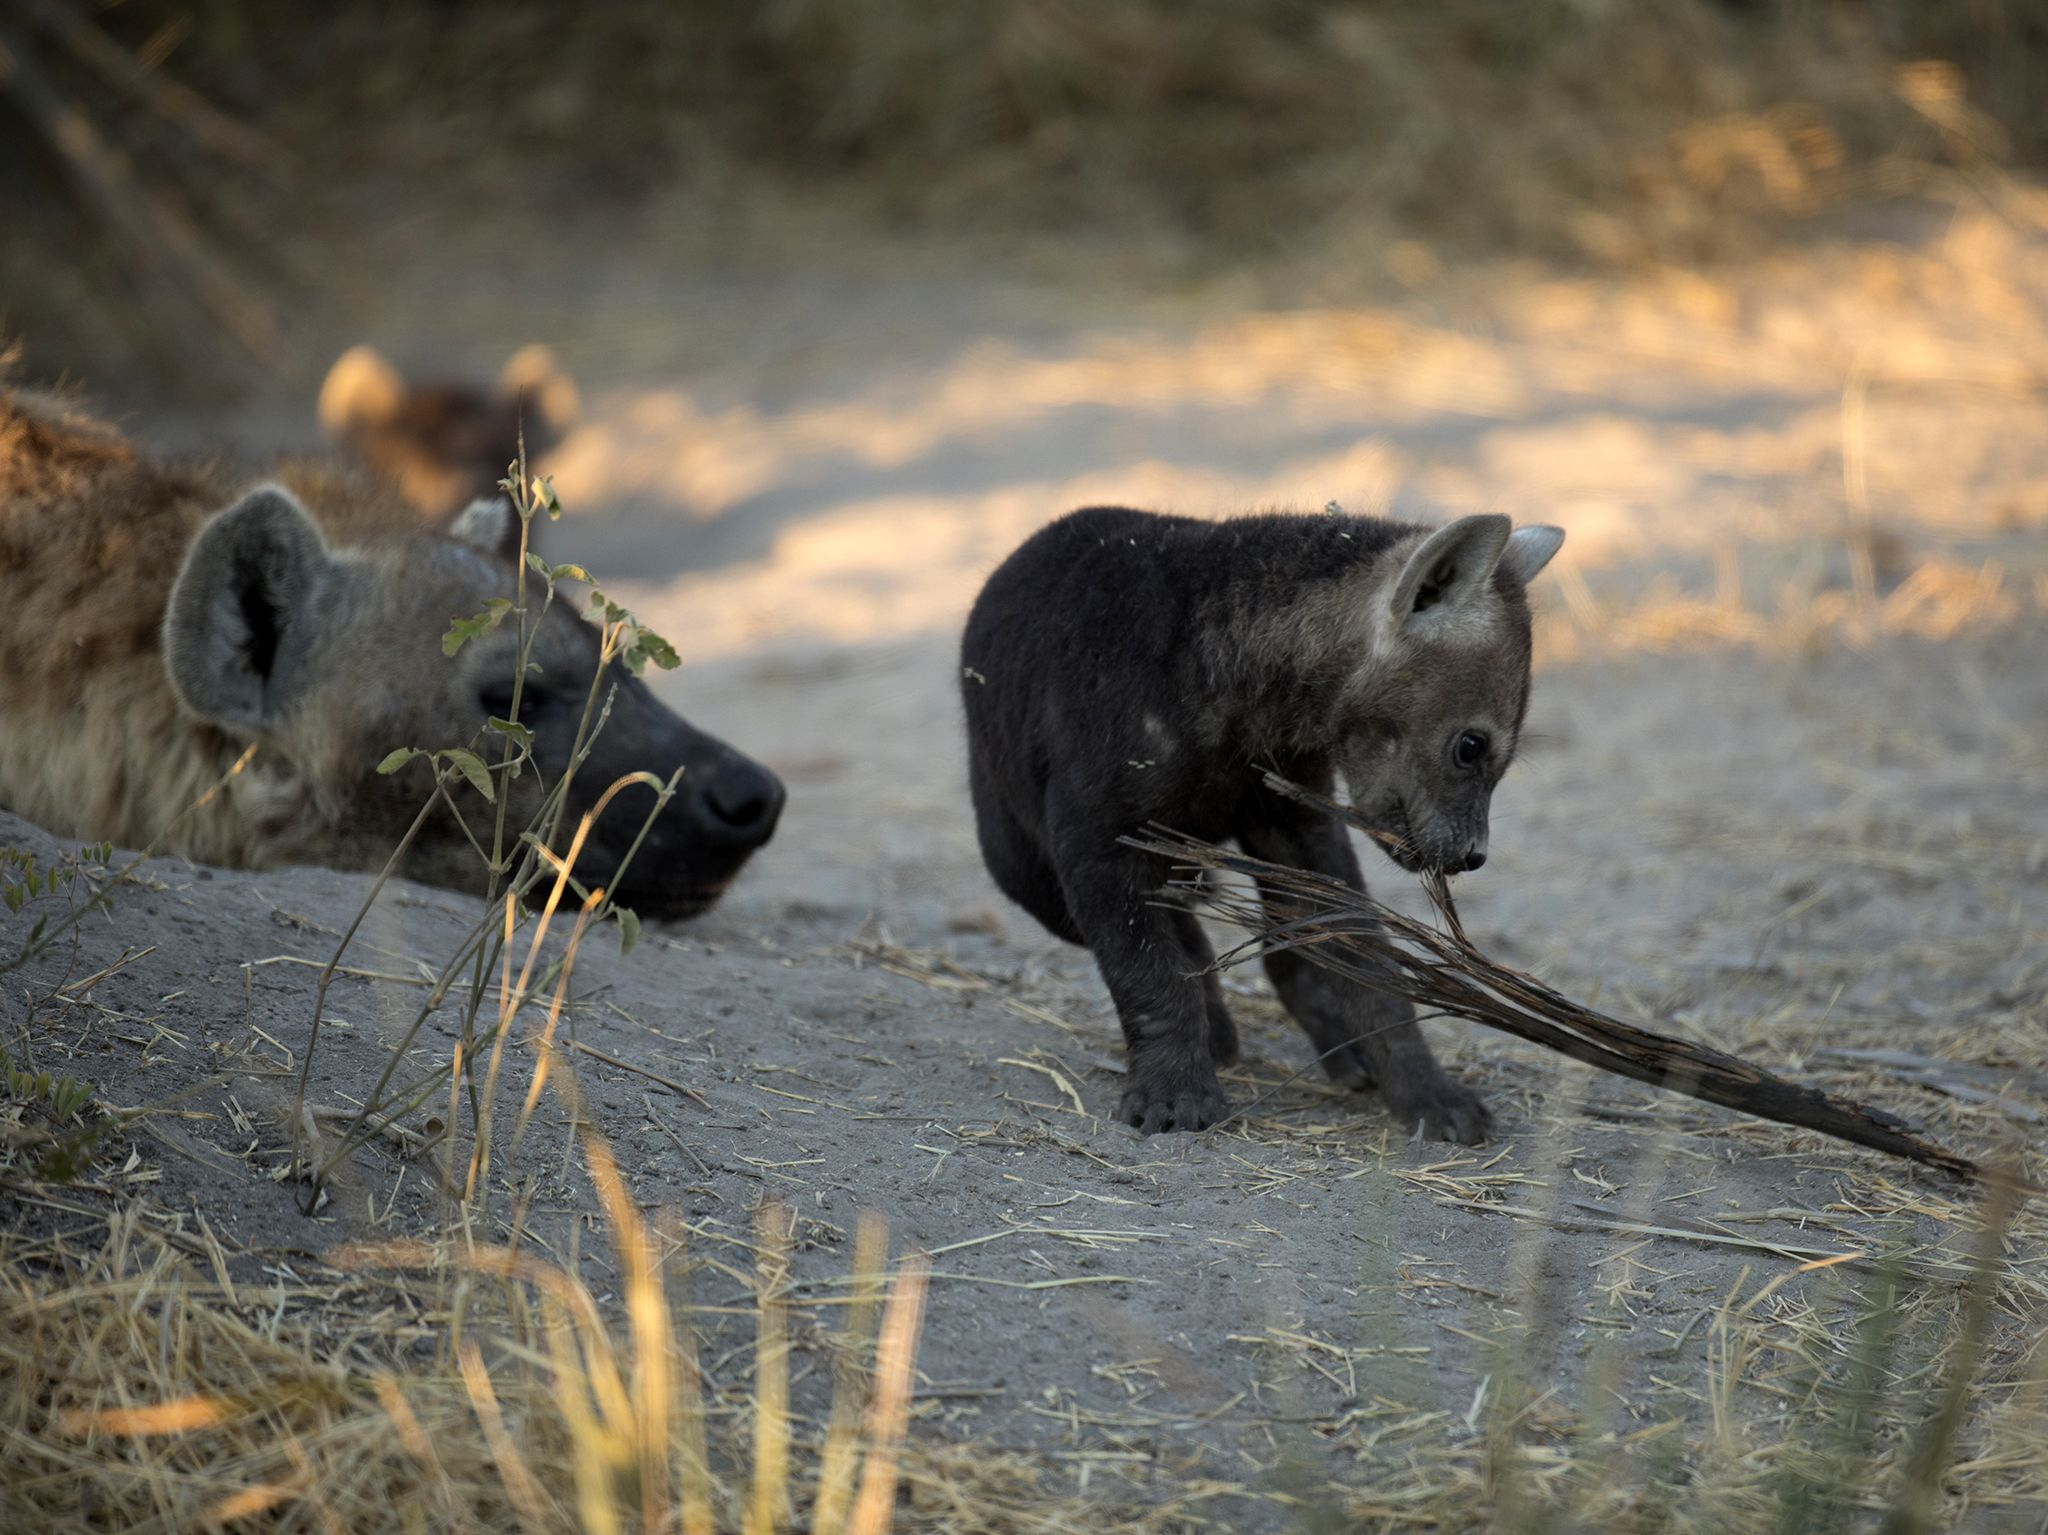 Moremi Game Reserve, Okavango Delta, Botswana:  A hyena cub plays with foliage at the den as an... [Photo of the day - ژوئن 2019]